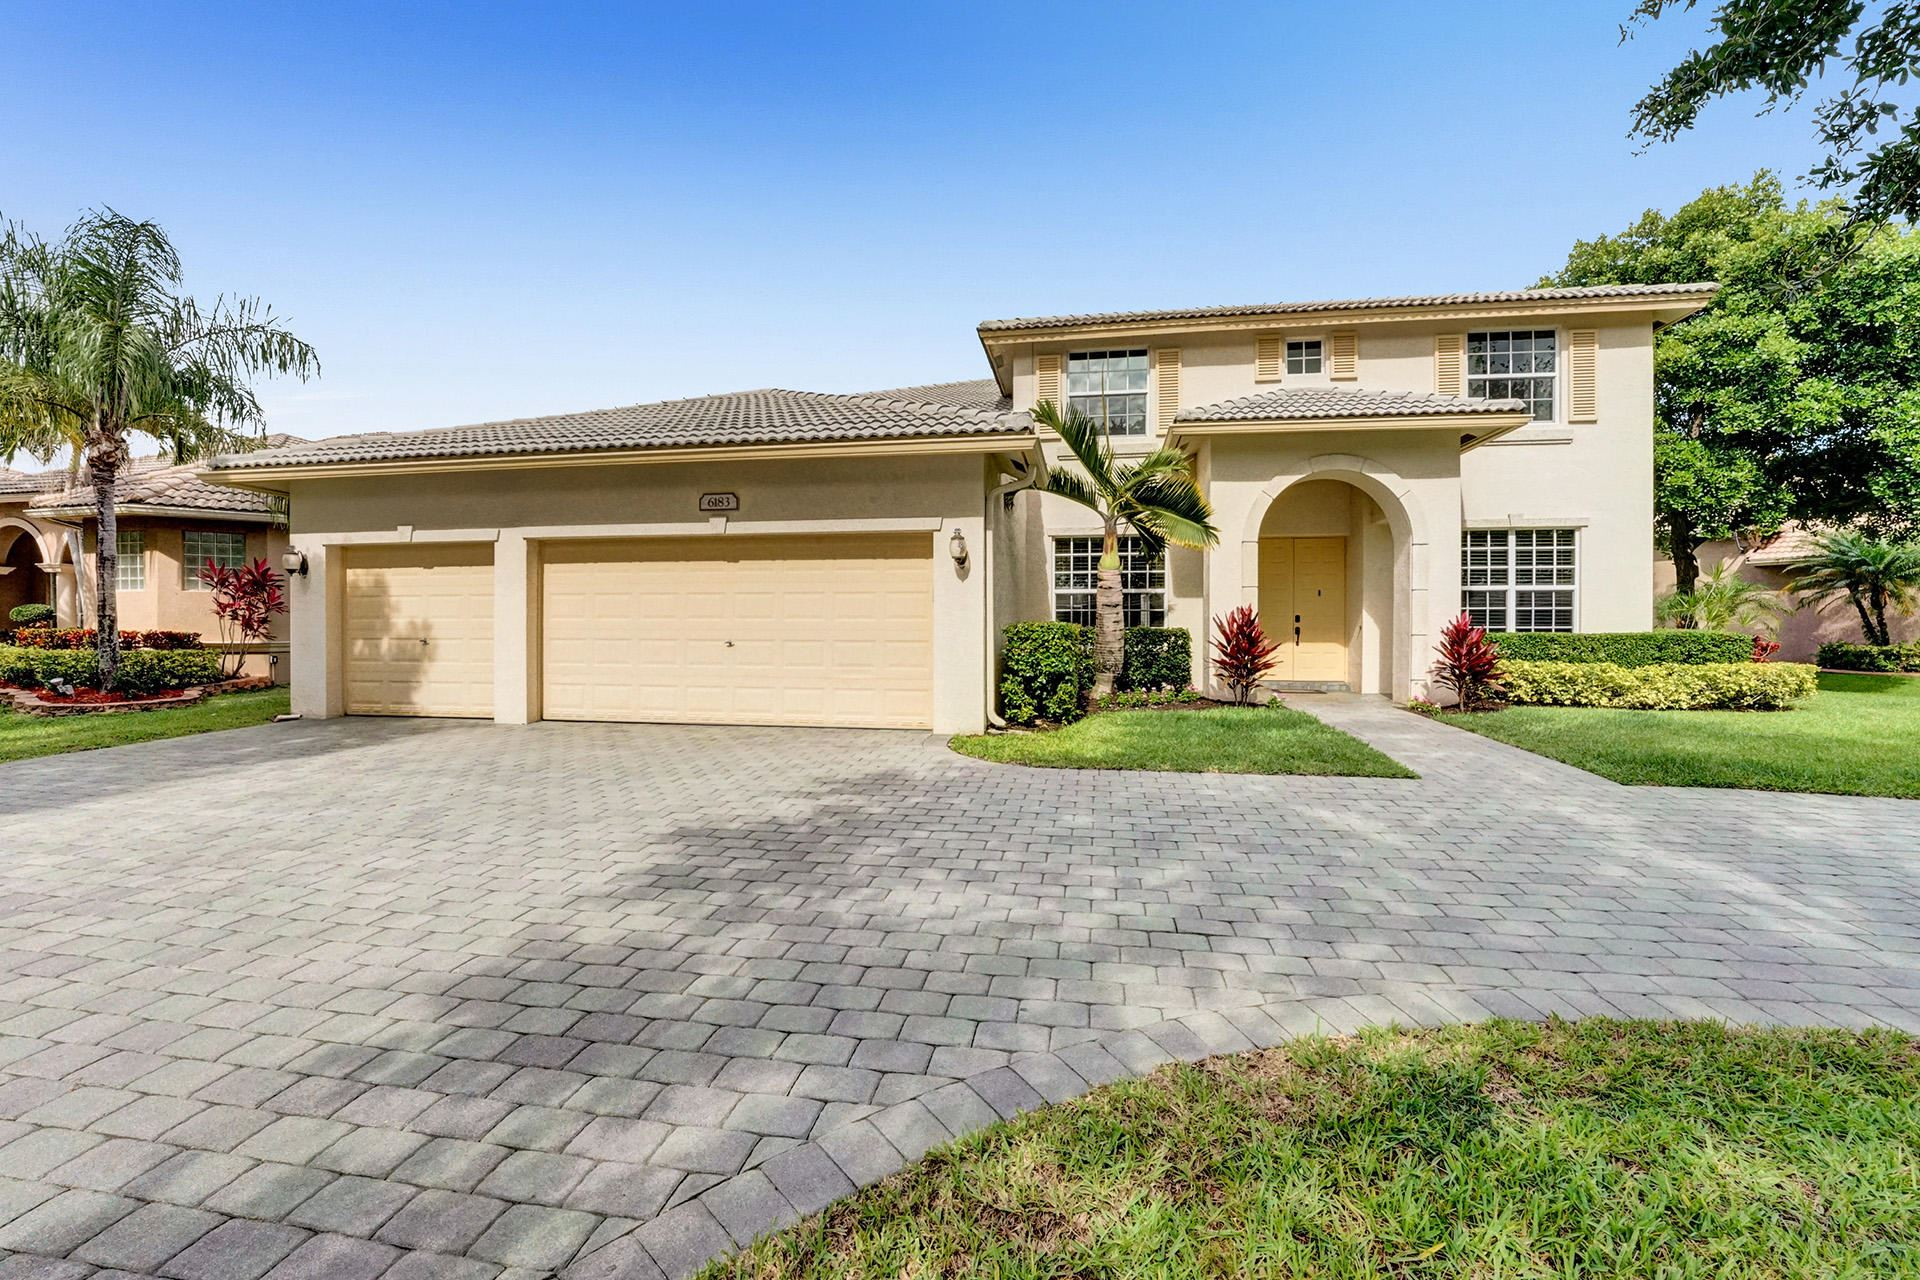 6183 NW 56th Drive, Coral Springs, FL 33067 - #: RX-10722868